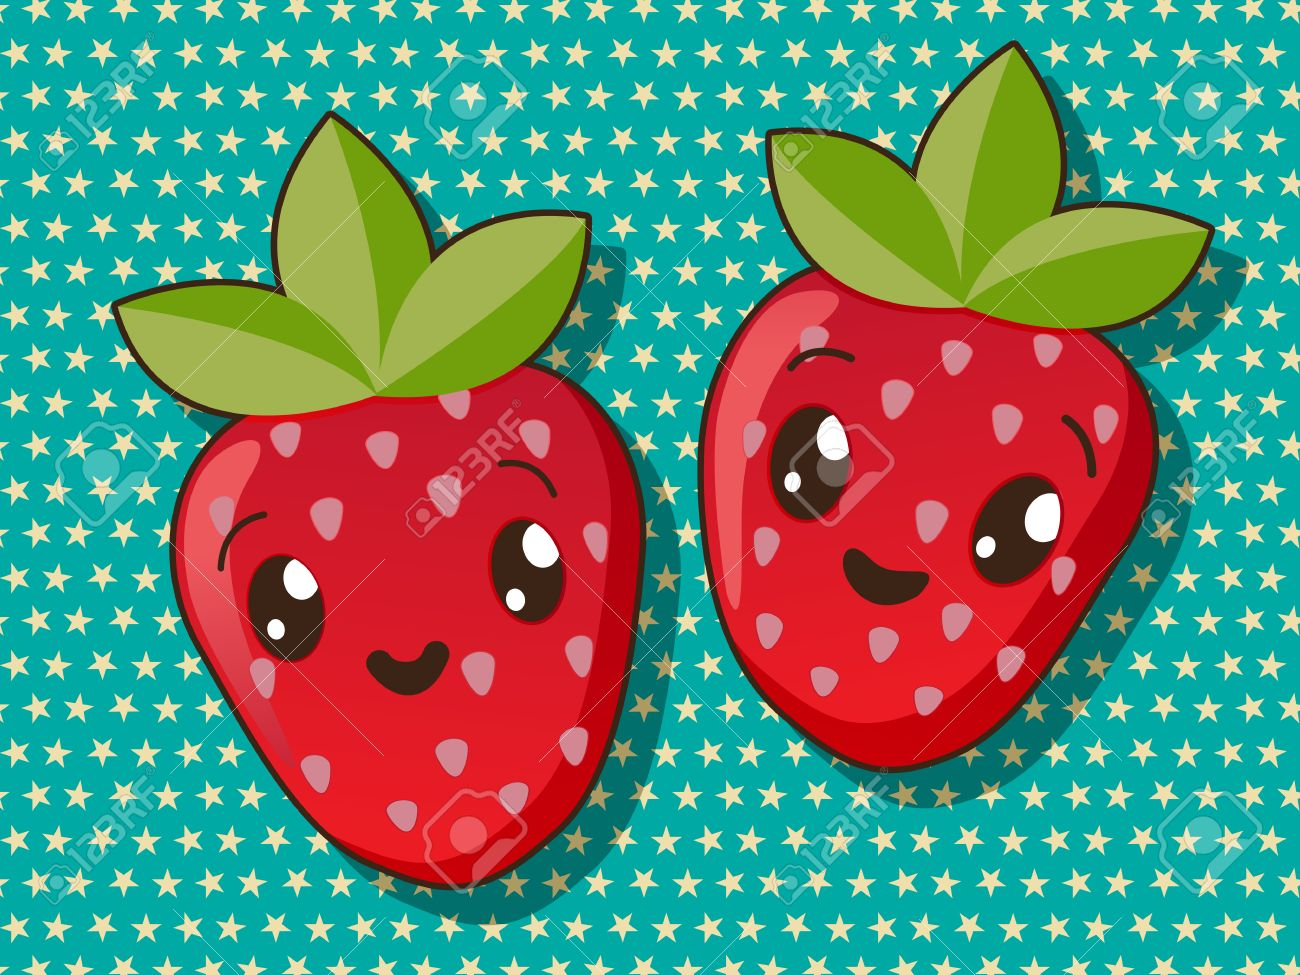 Kawaii Style Drawing Strawberry Icons Royalty Free Cliparts